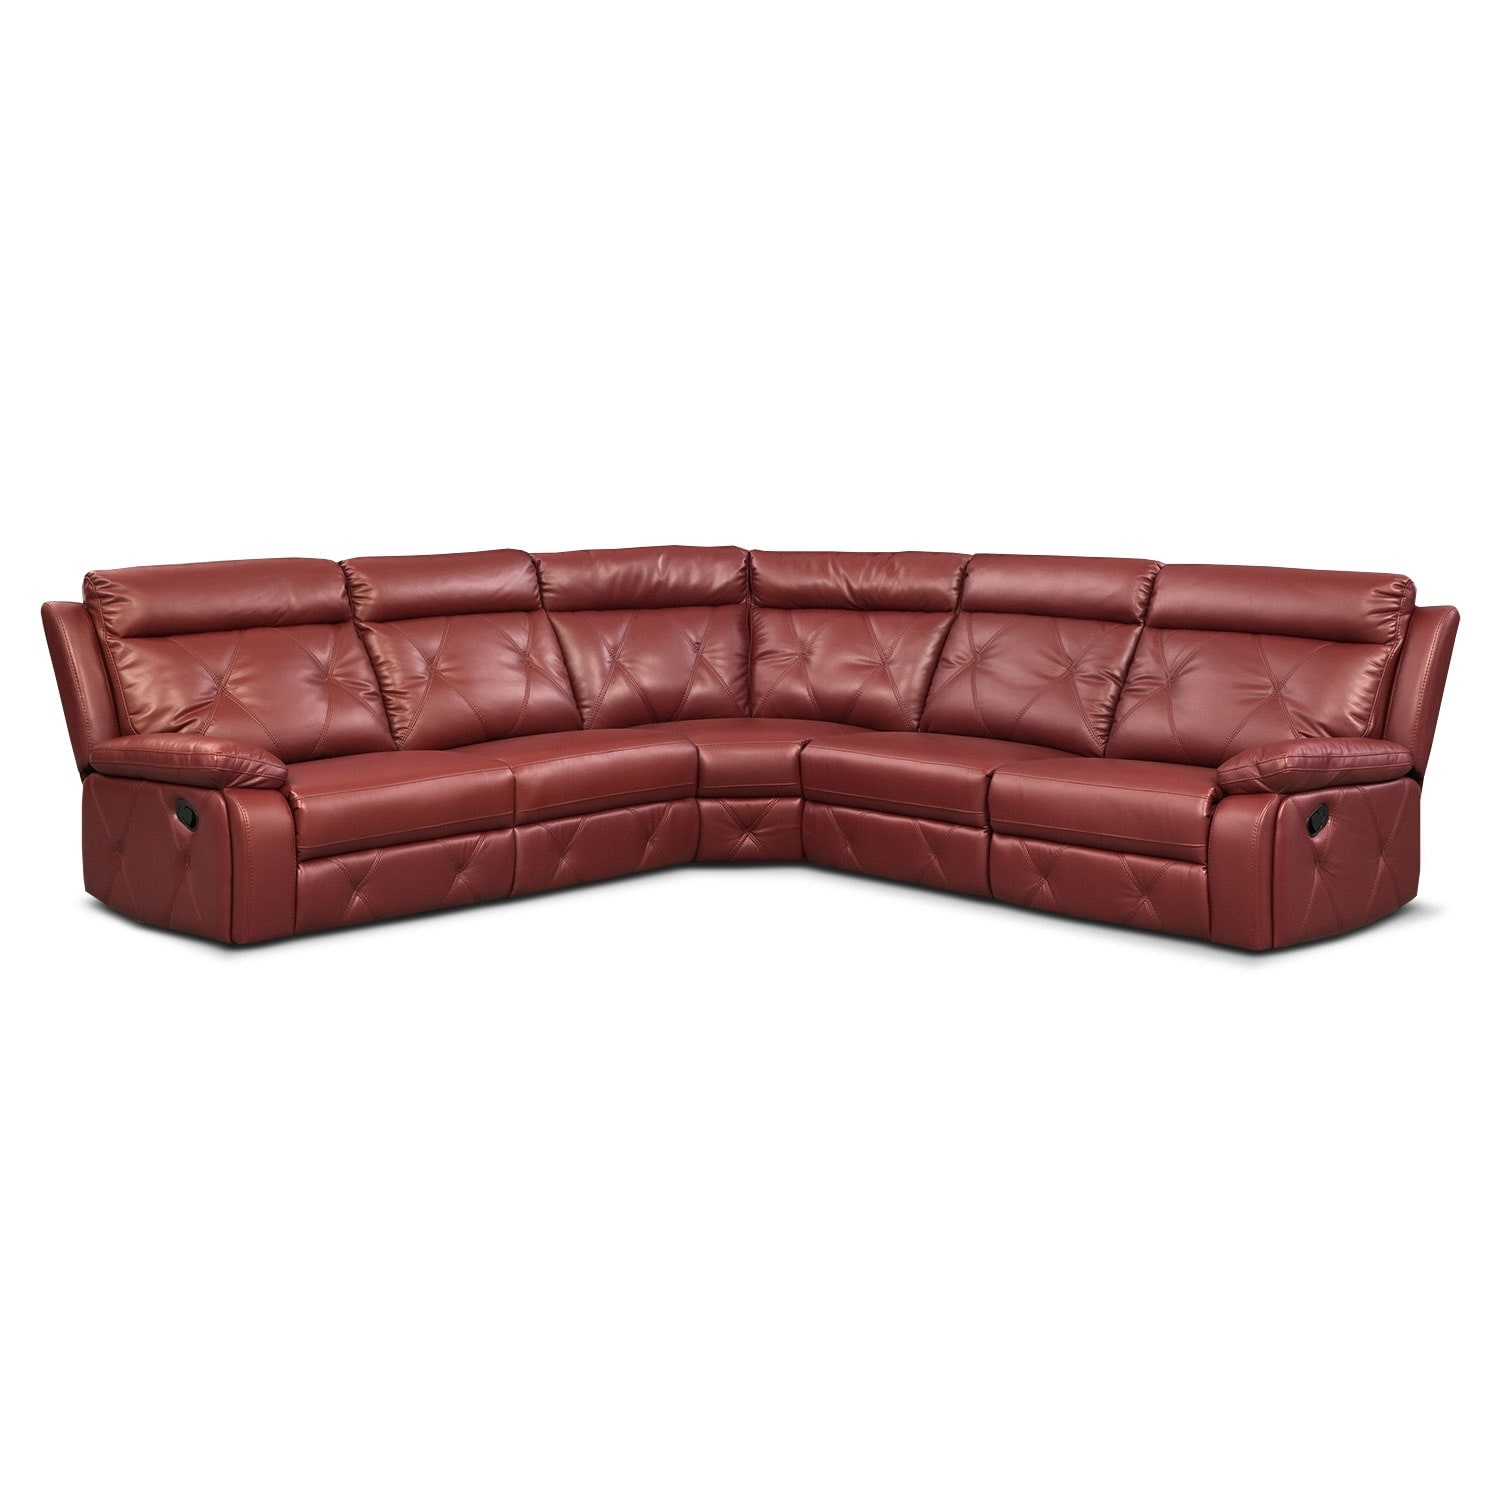 Living Room Furniture - Dante 5-Piece Reclining Sectional with 2 Reclining Seats - Red